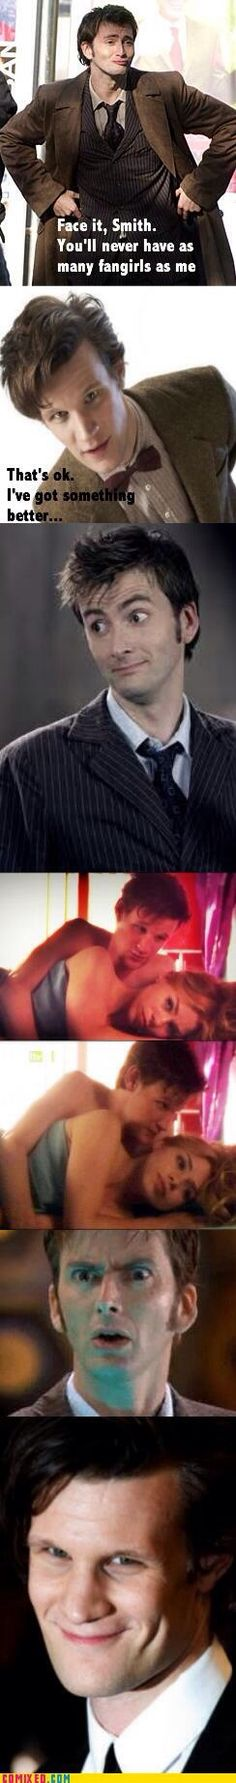 Just Died!     |    Rose and her doctors...     |Matt Smith / David Tennant / Billie Piper  | Doctor Who